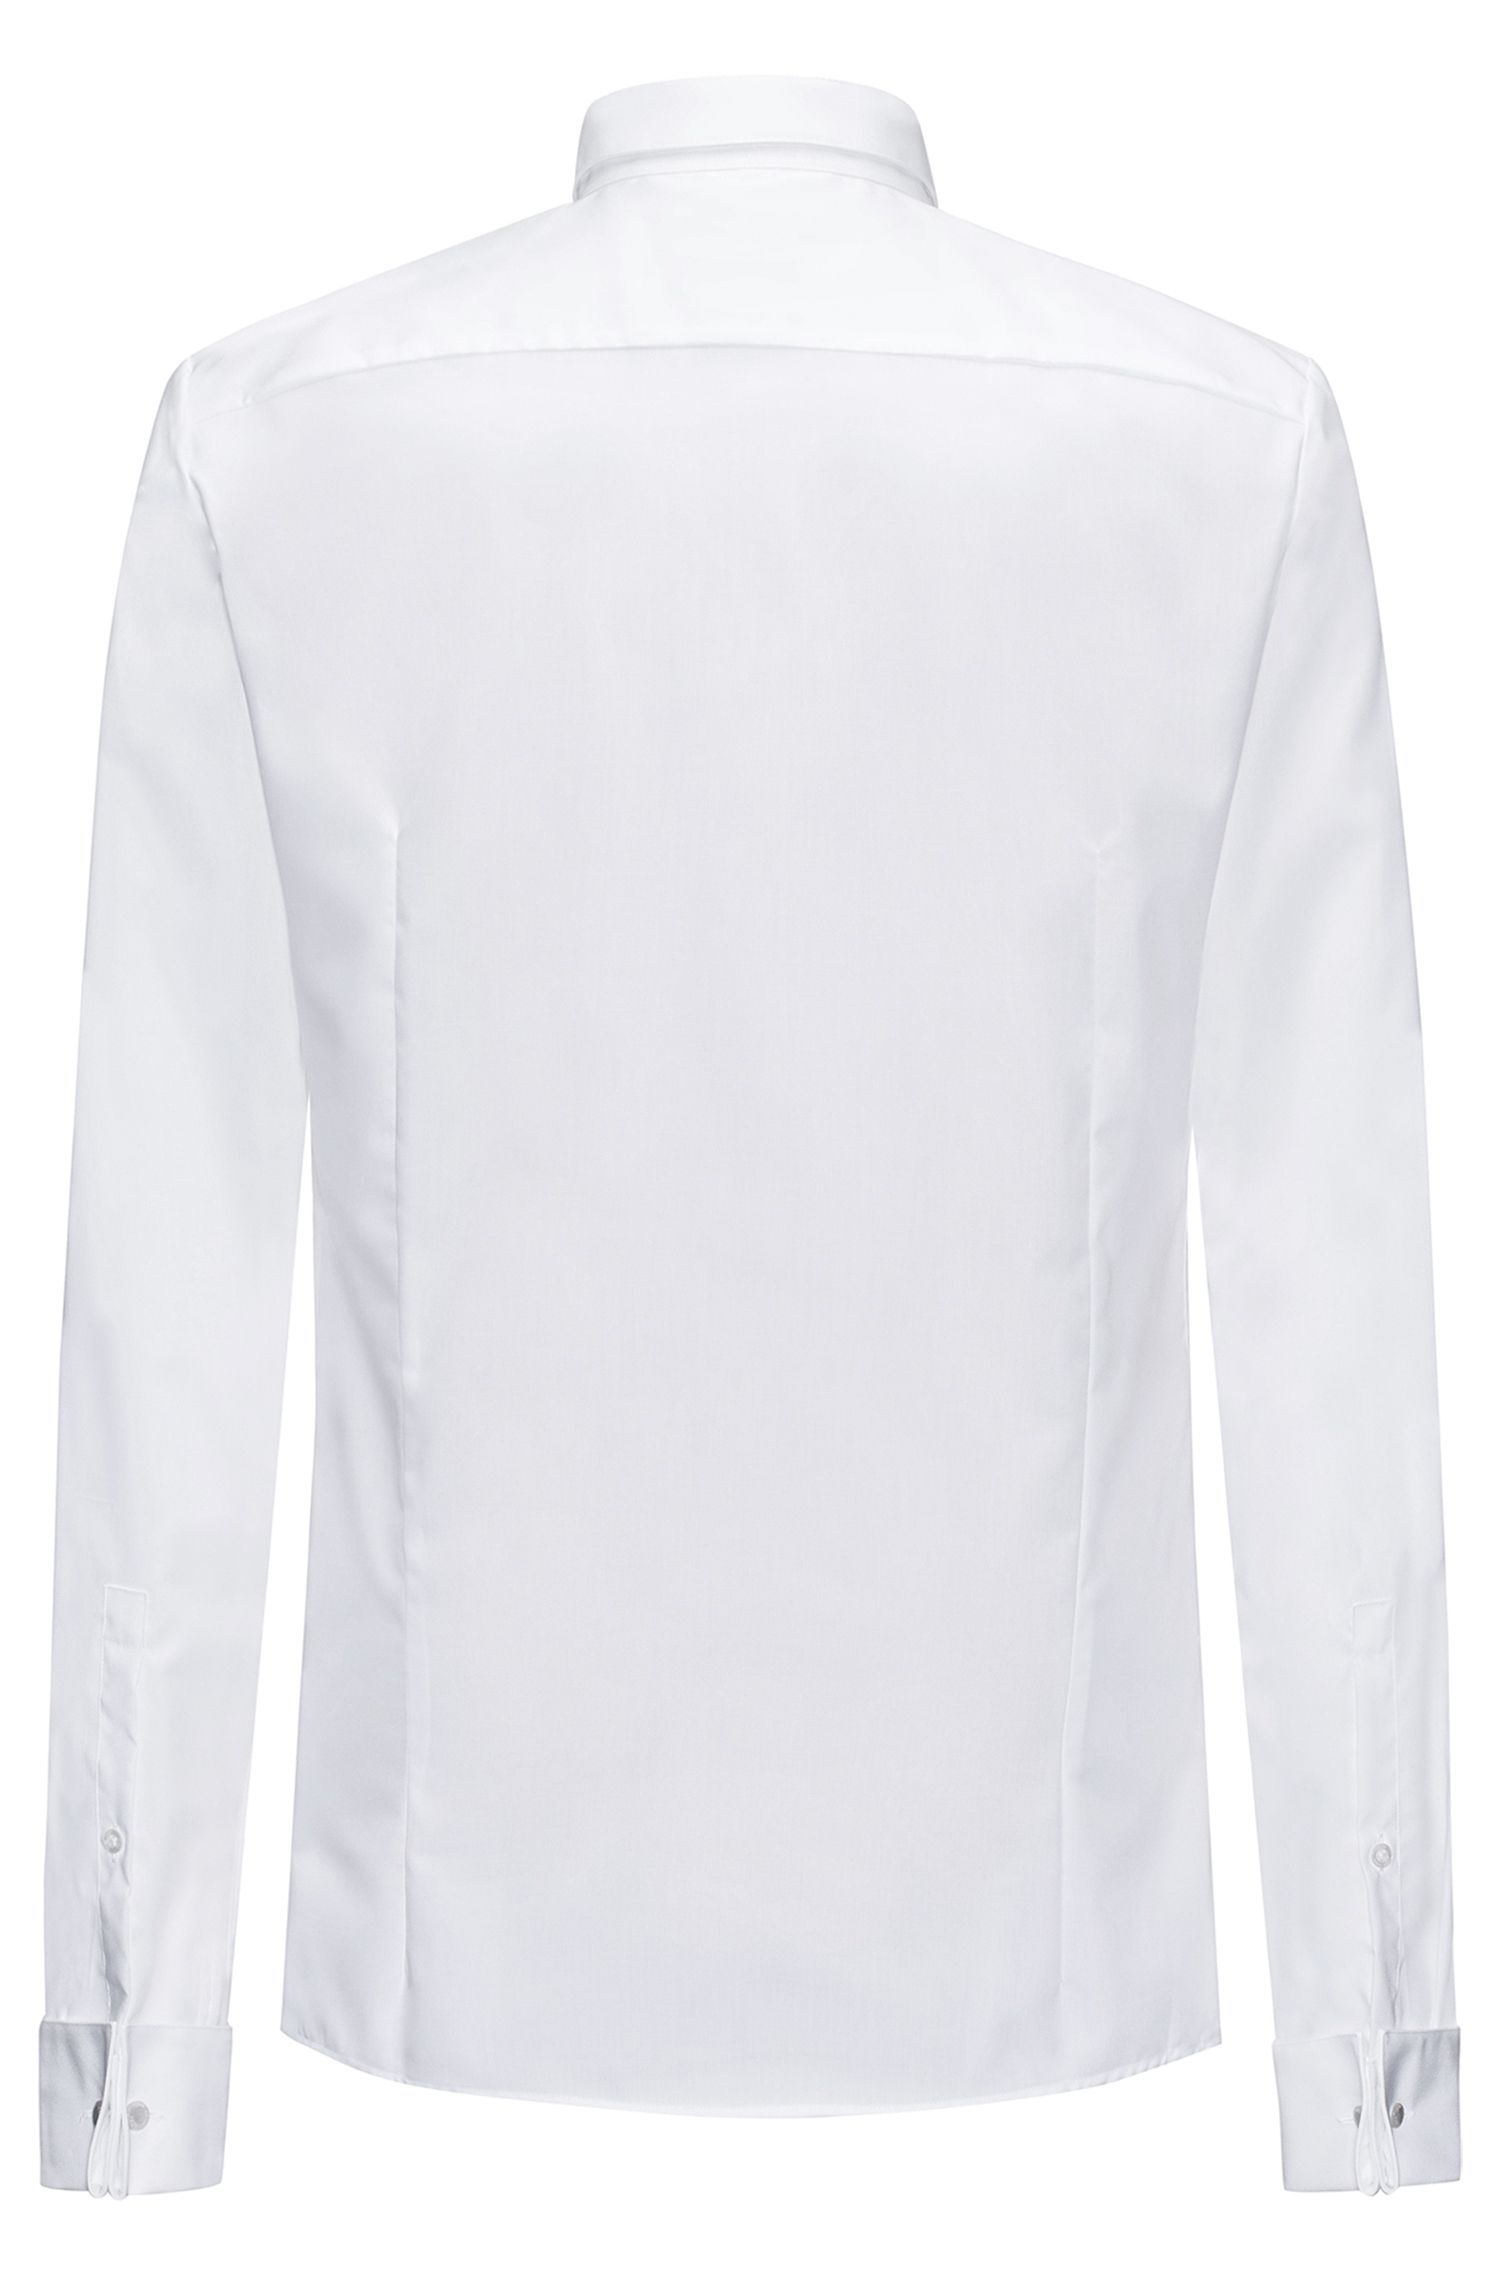 Extra-slim-fit cotton shirt with concealed placket